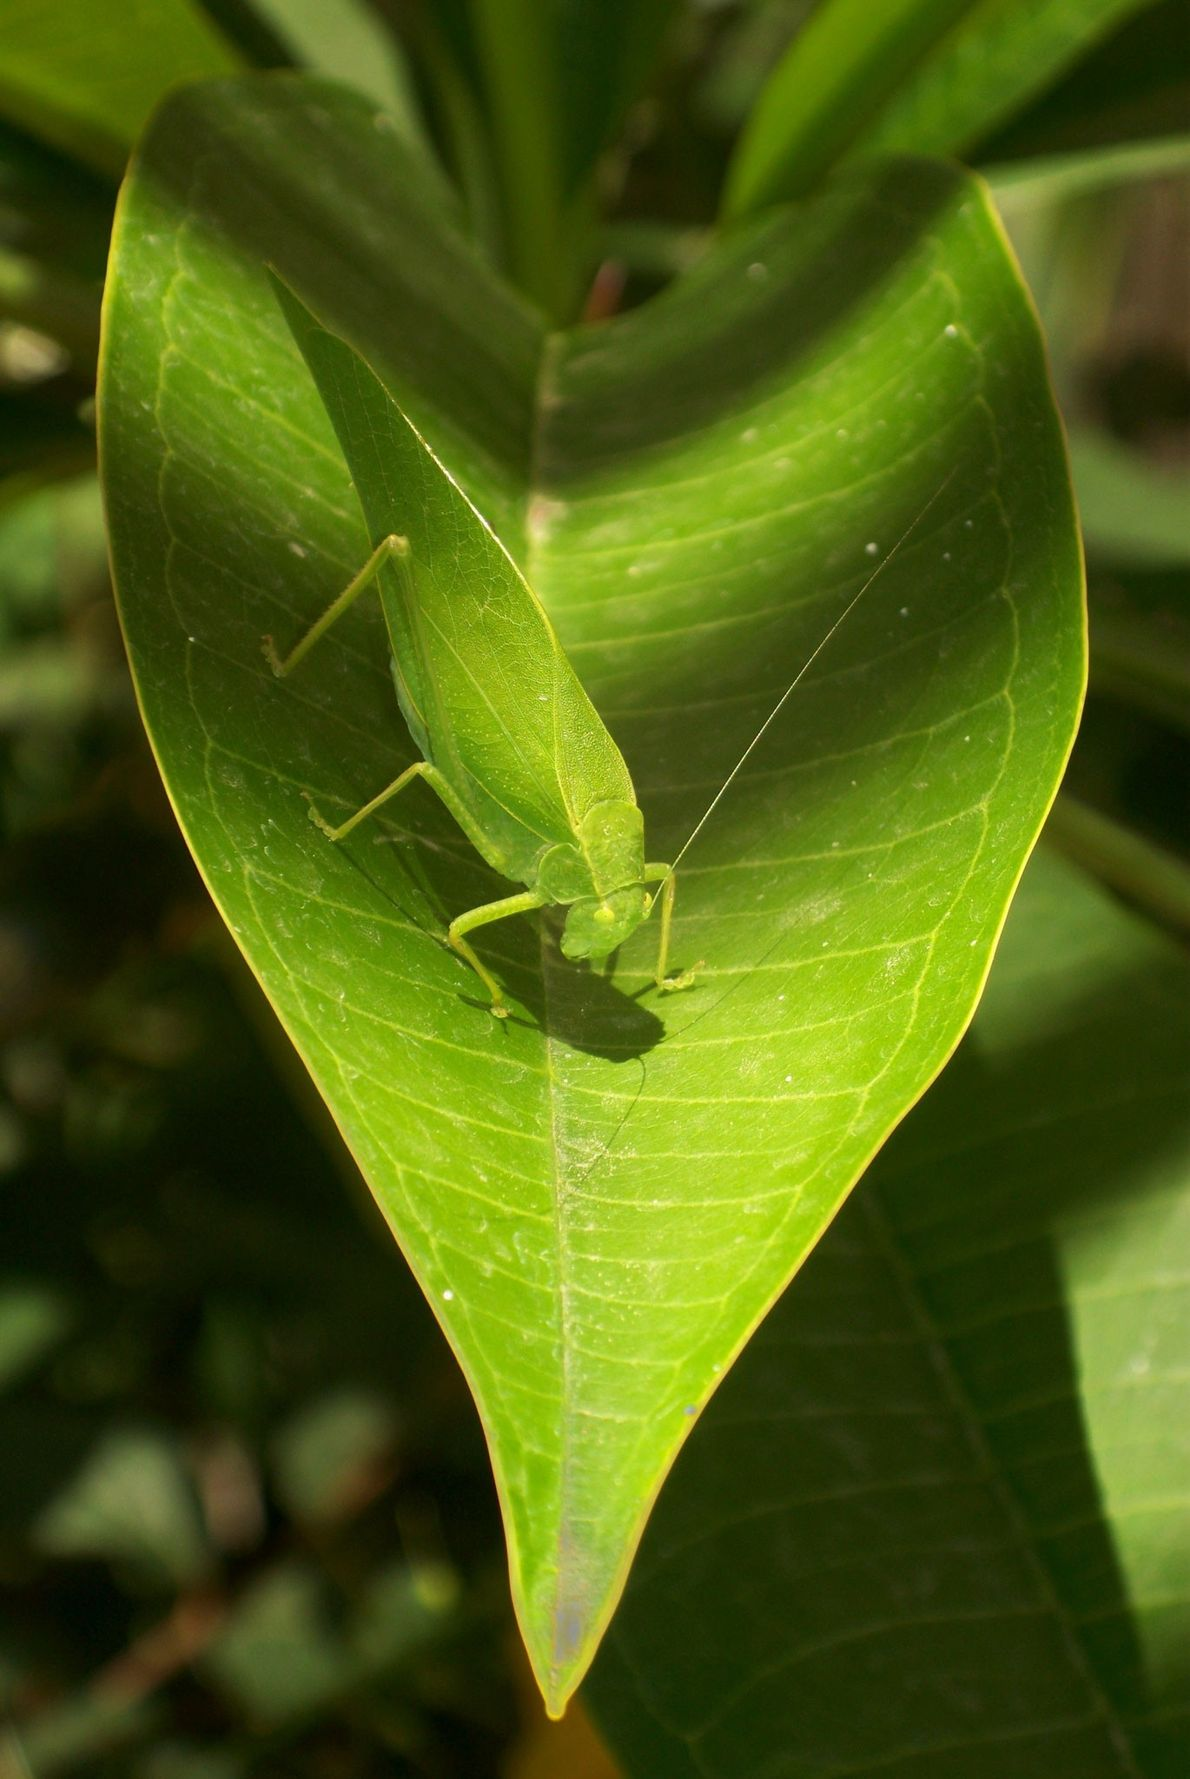 Katydid. Santa Fe, New Mexico, United States